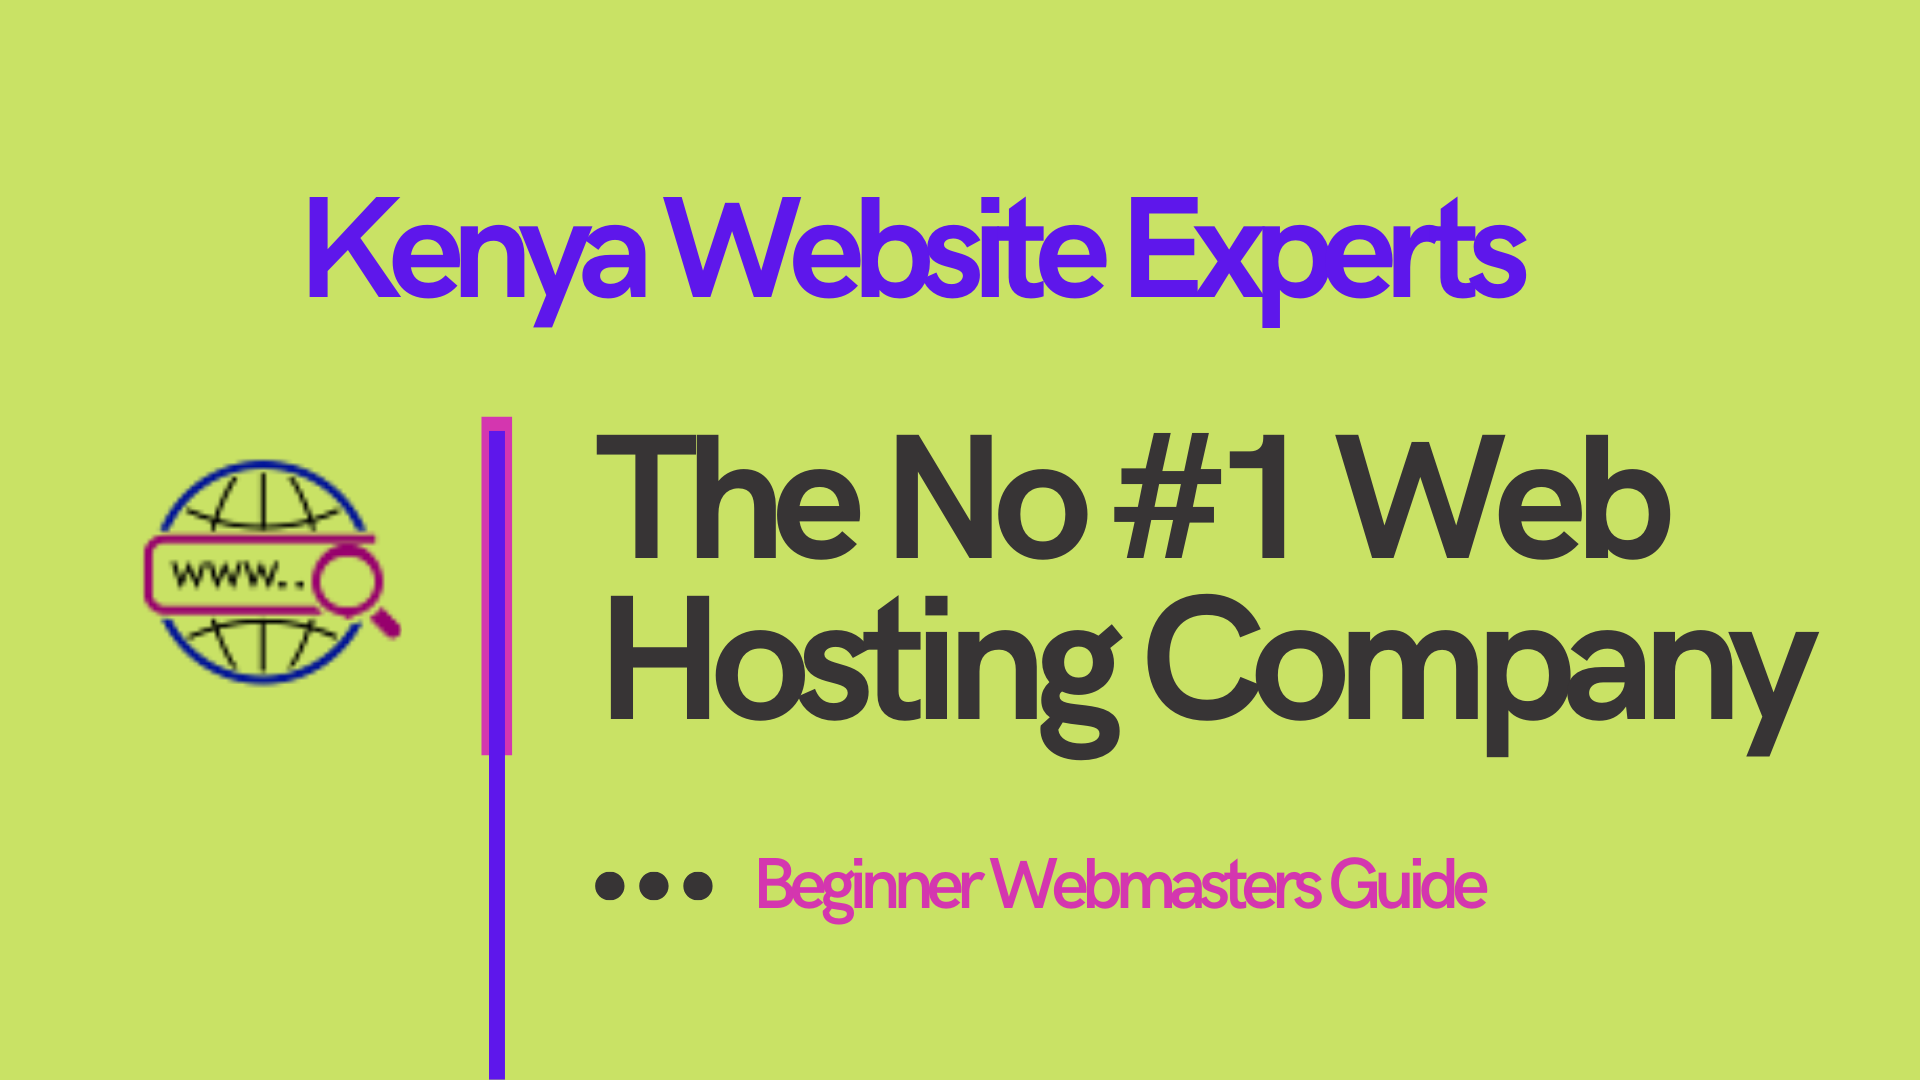 Why Use Kenya Website Experts?